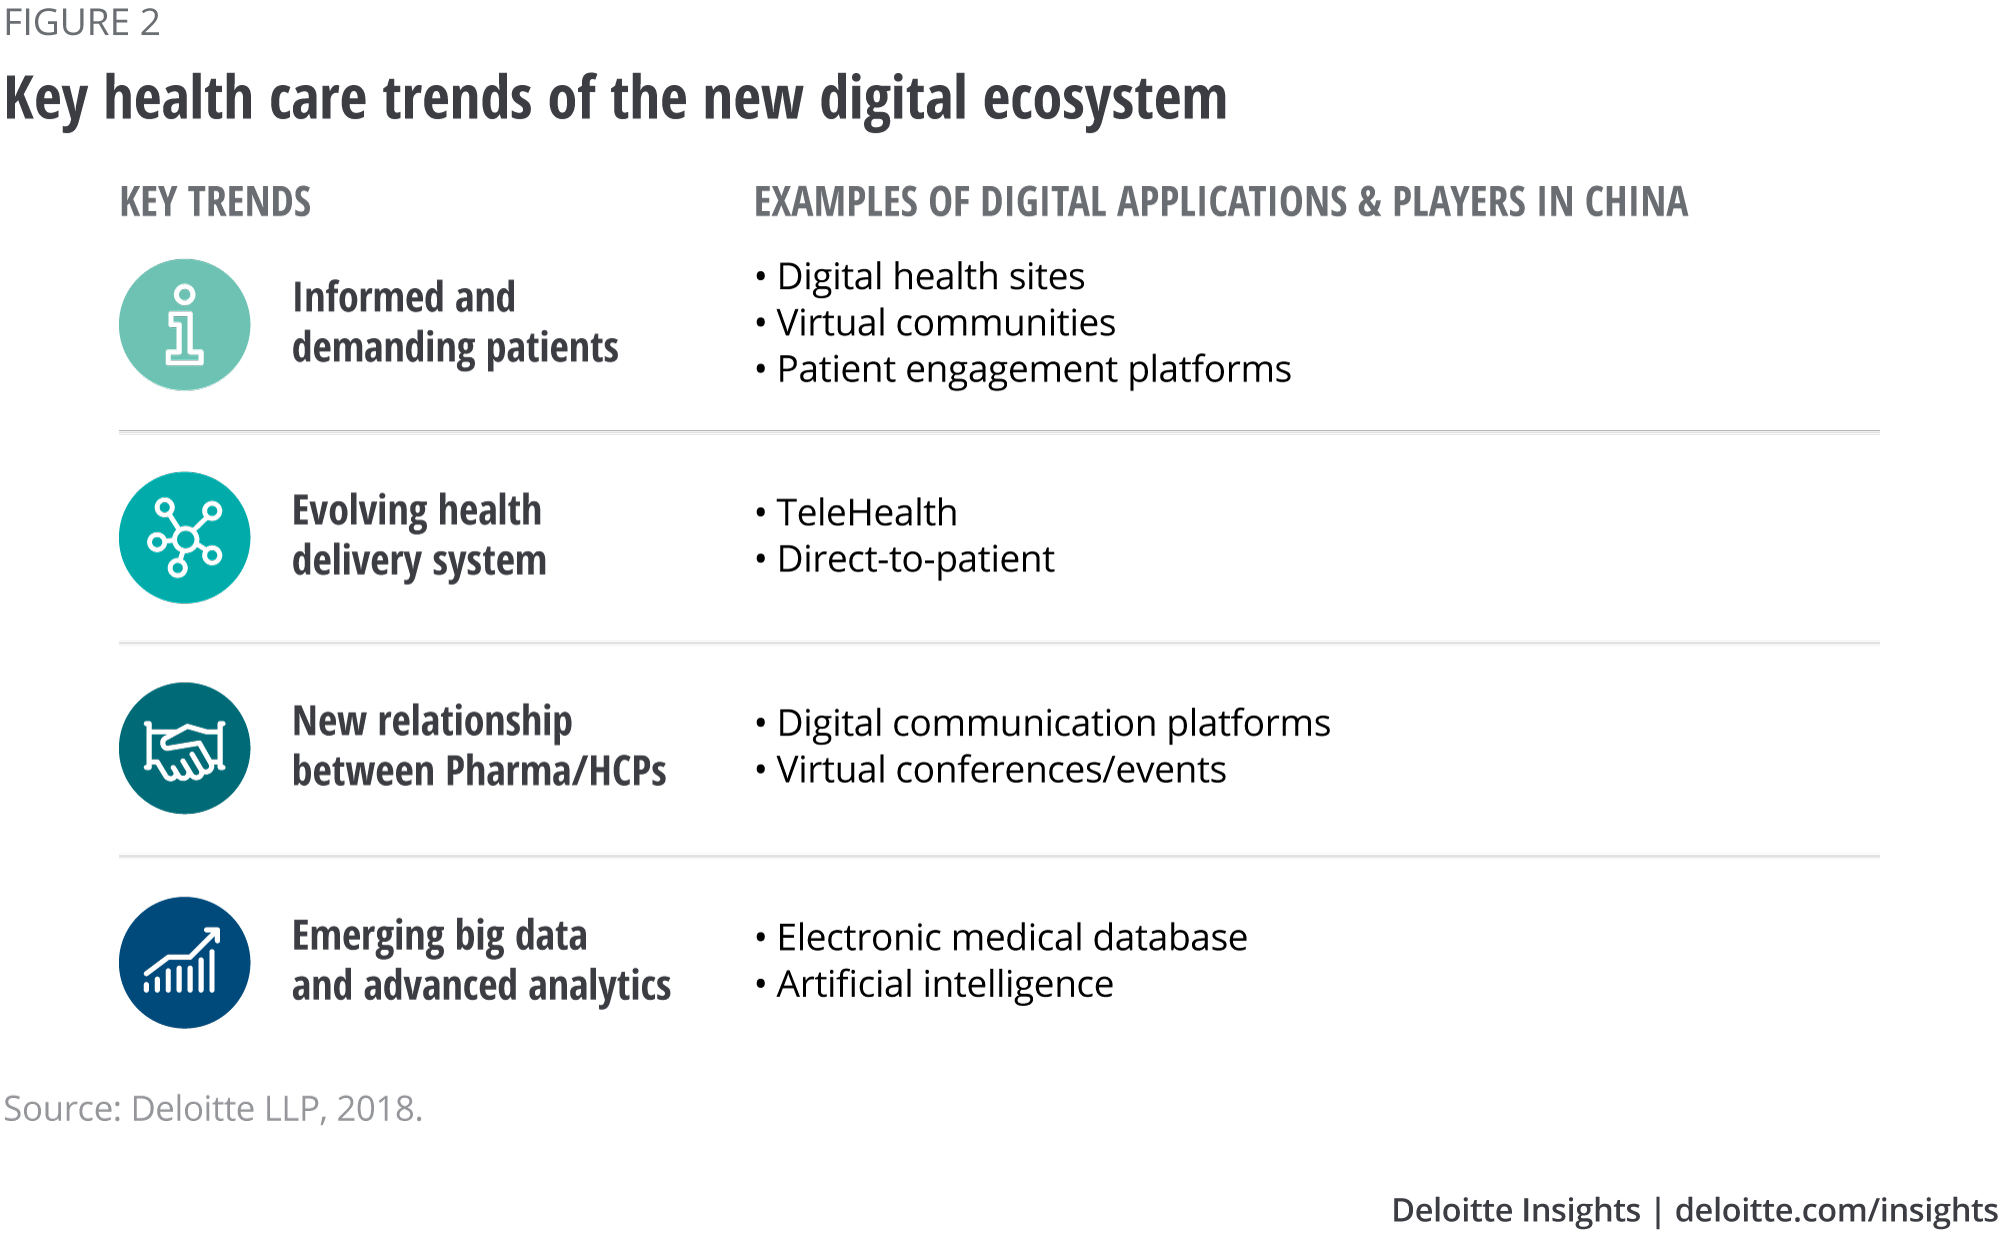 Key health care trends of the new digital ecosystem